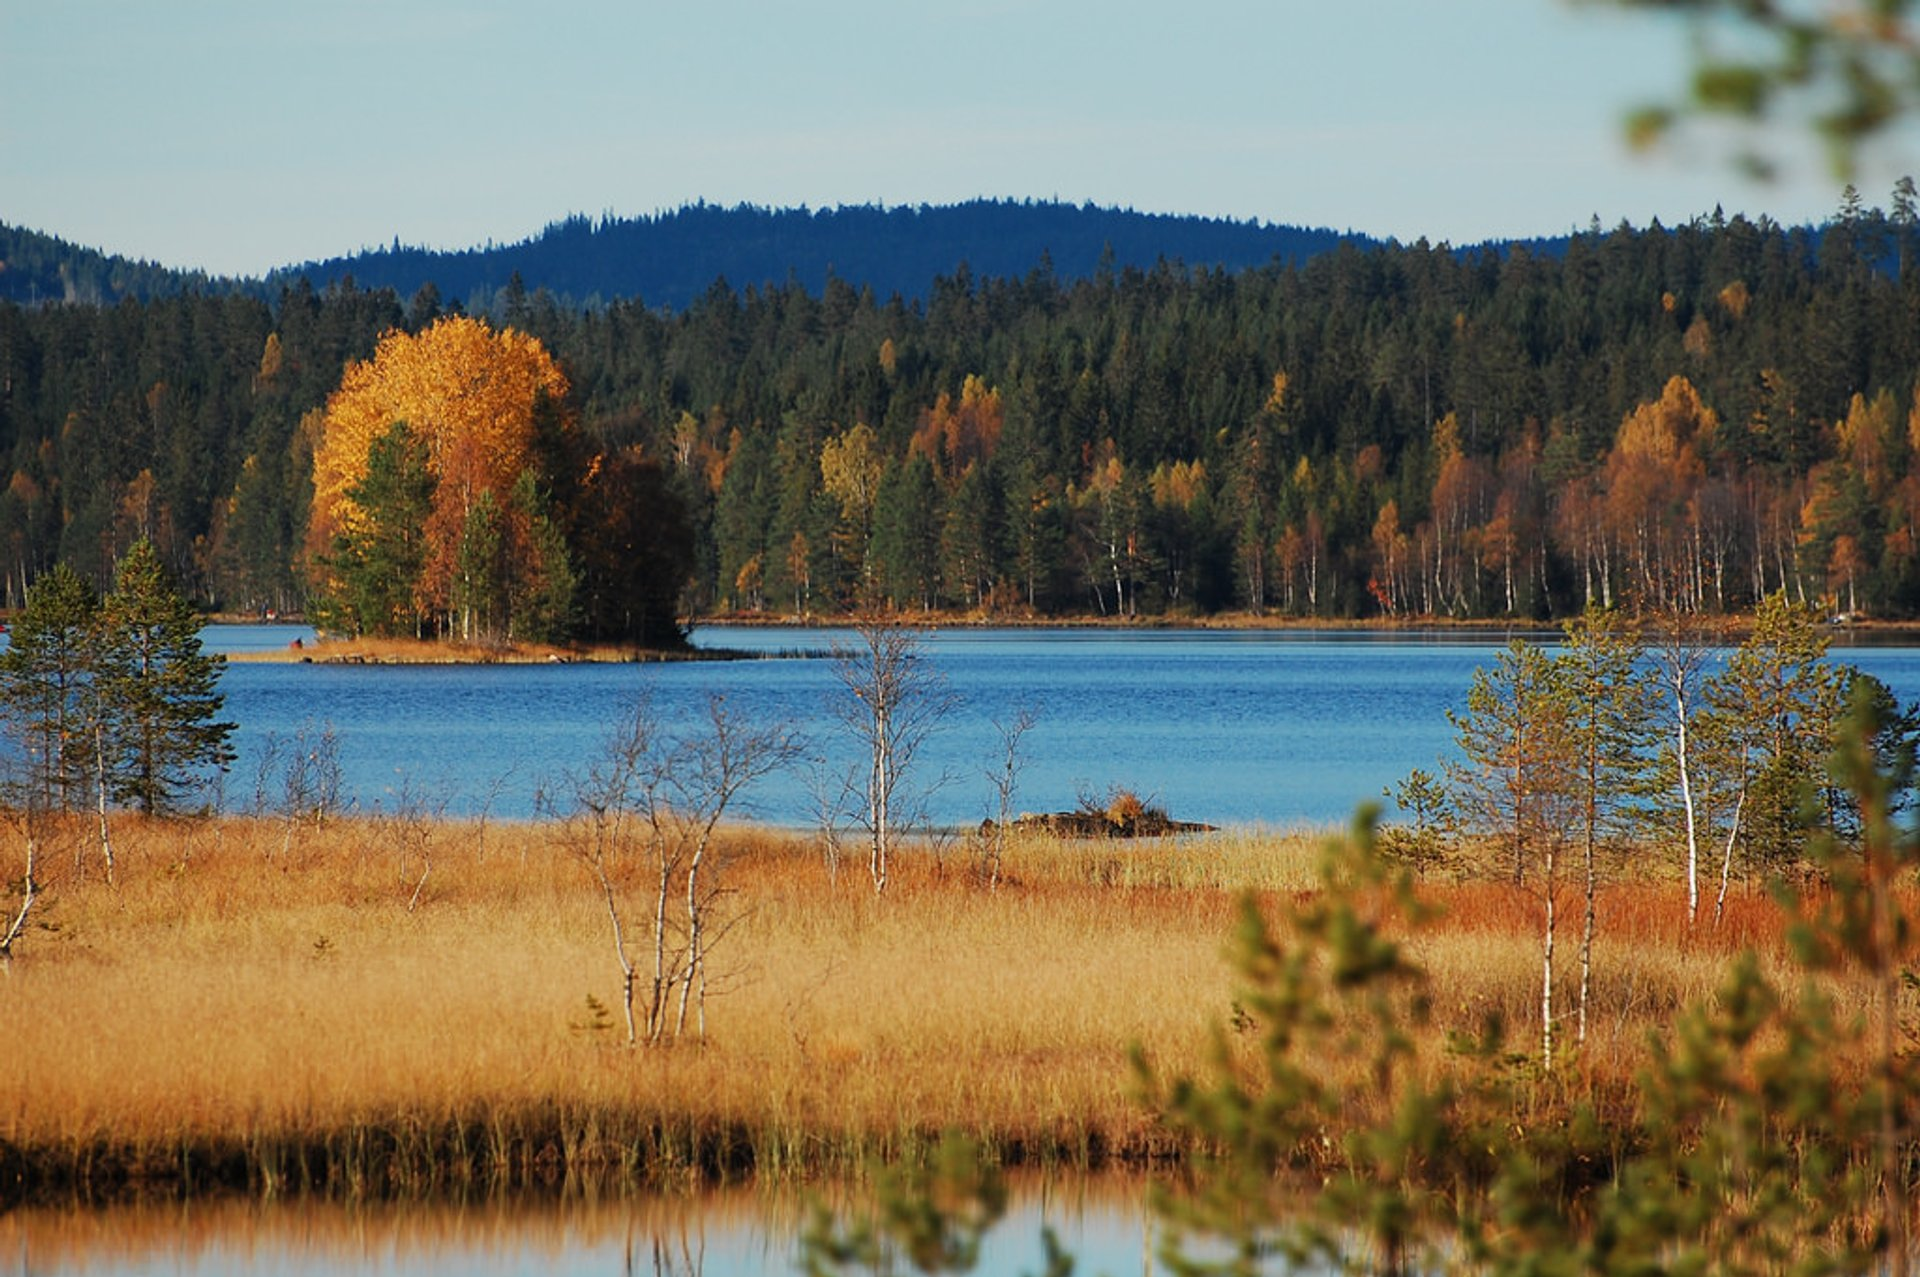 Autumn in Norway 2020 - Best Time